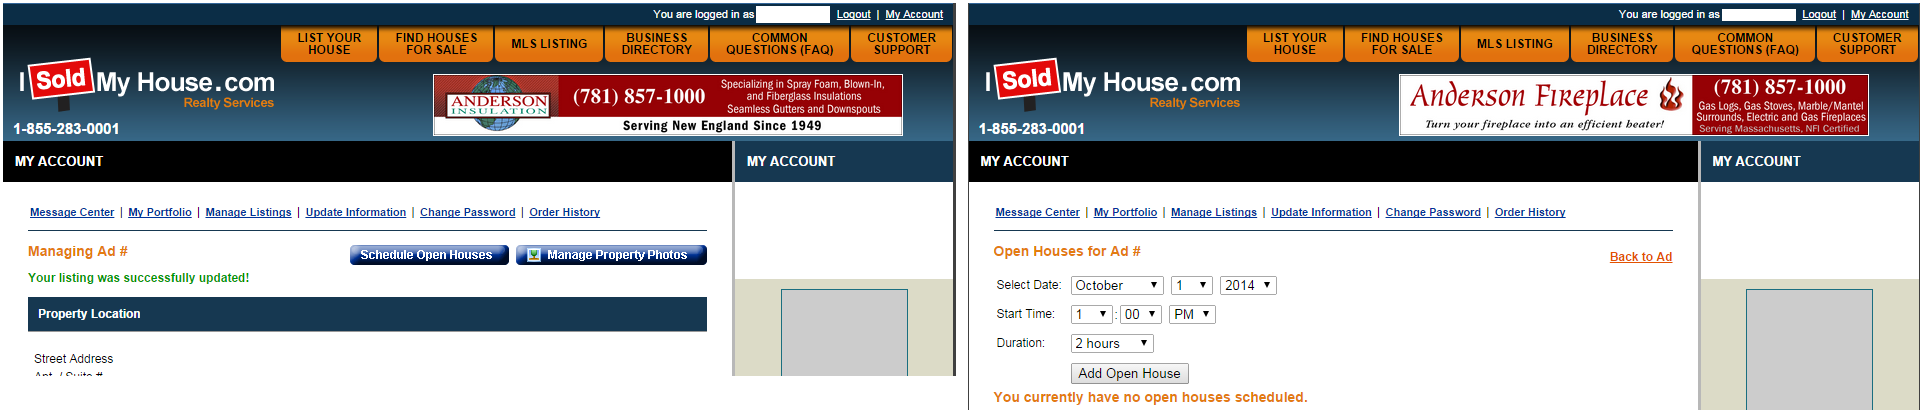 """Schedule Open Houses"" button leads to a calendar form"